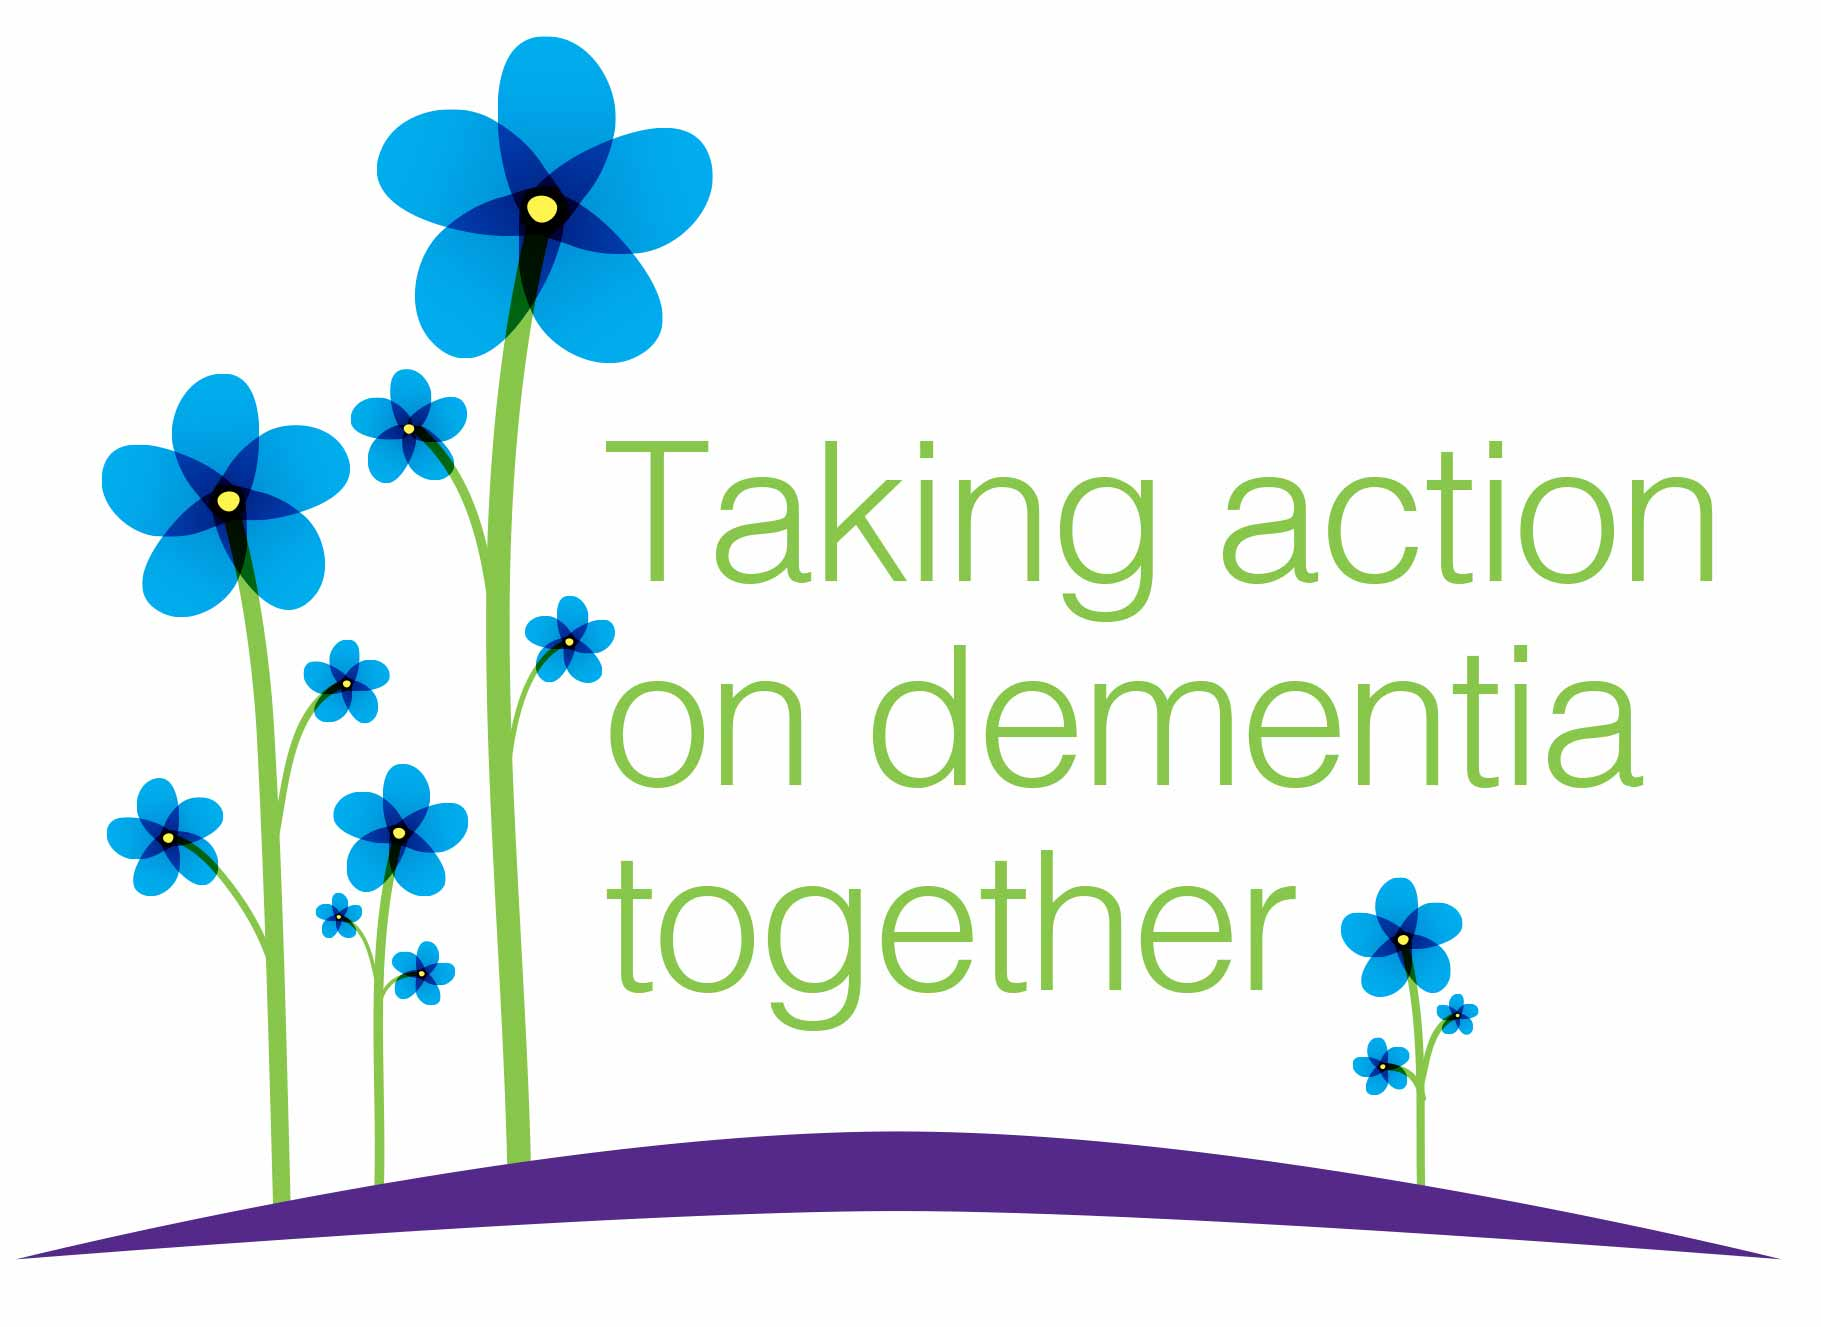 Taking action on dementia